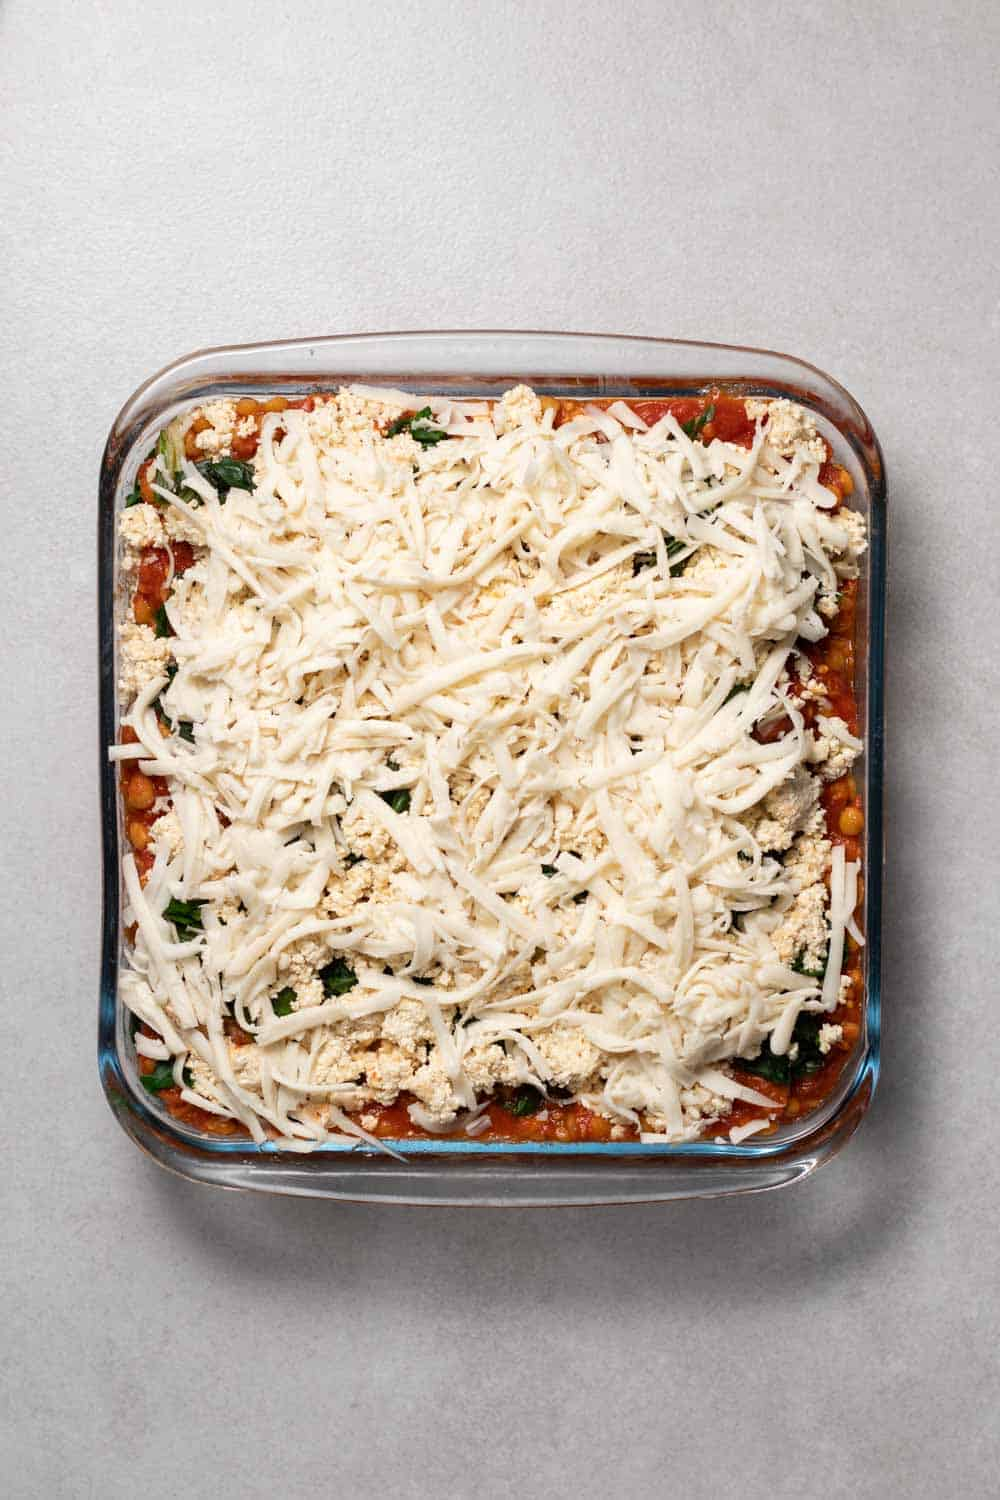 Adding freshly grated vegan cheese to the top of the lasagna